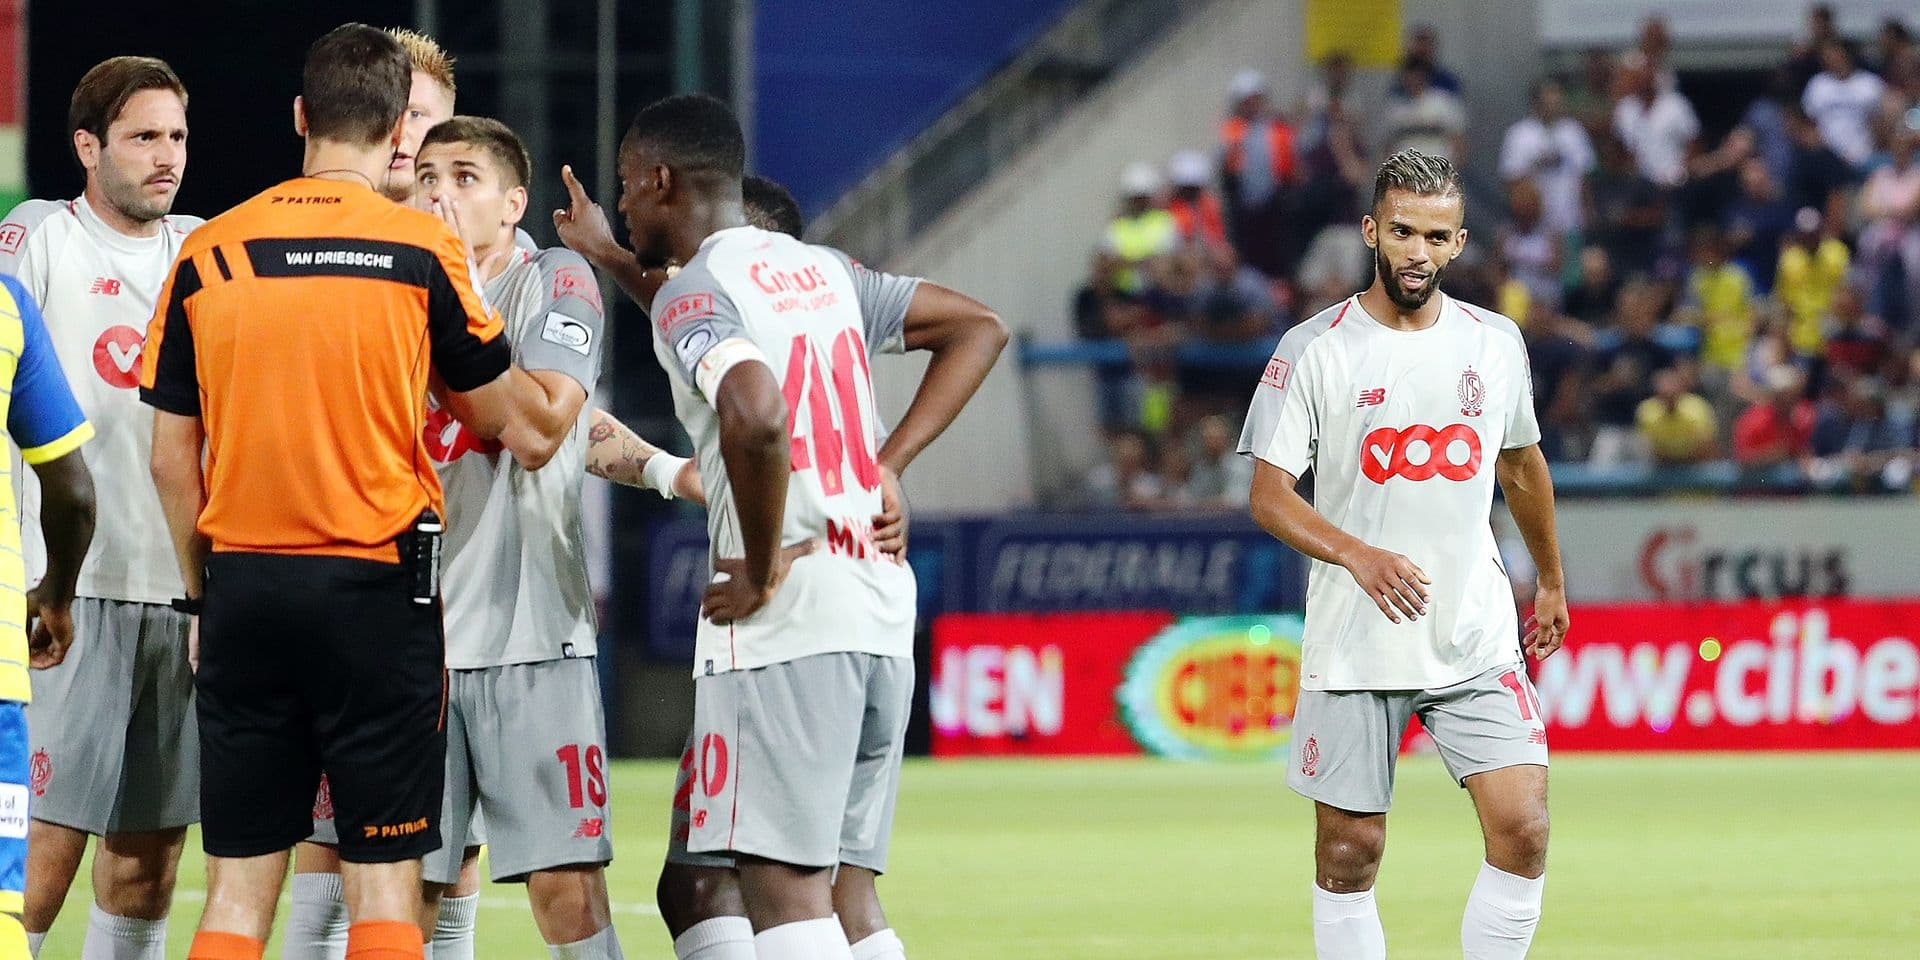 Standard's Mehdi Carcela receives a red card from the referee during the Jupiler Pro League match between Waasland-Beveren and Standard de Liege, in Beveren-Waas, Friday 03 August 2018, on the second day of the Jupiler Pro League, the Belgian soccer championship season 2018-2019. BELGA PHOTO VIRGINIE LEFOUR